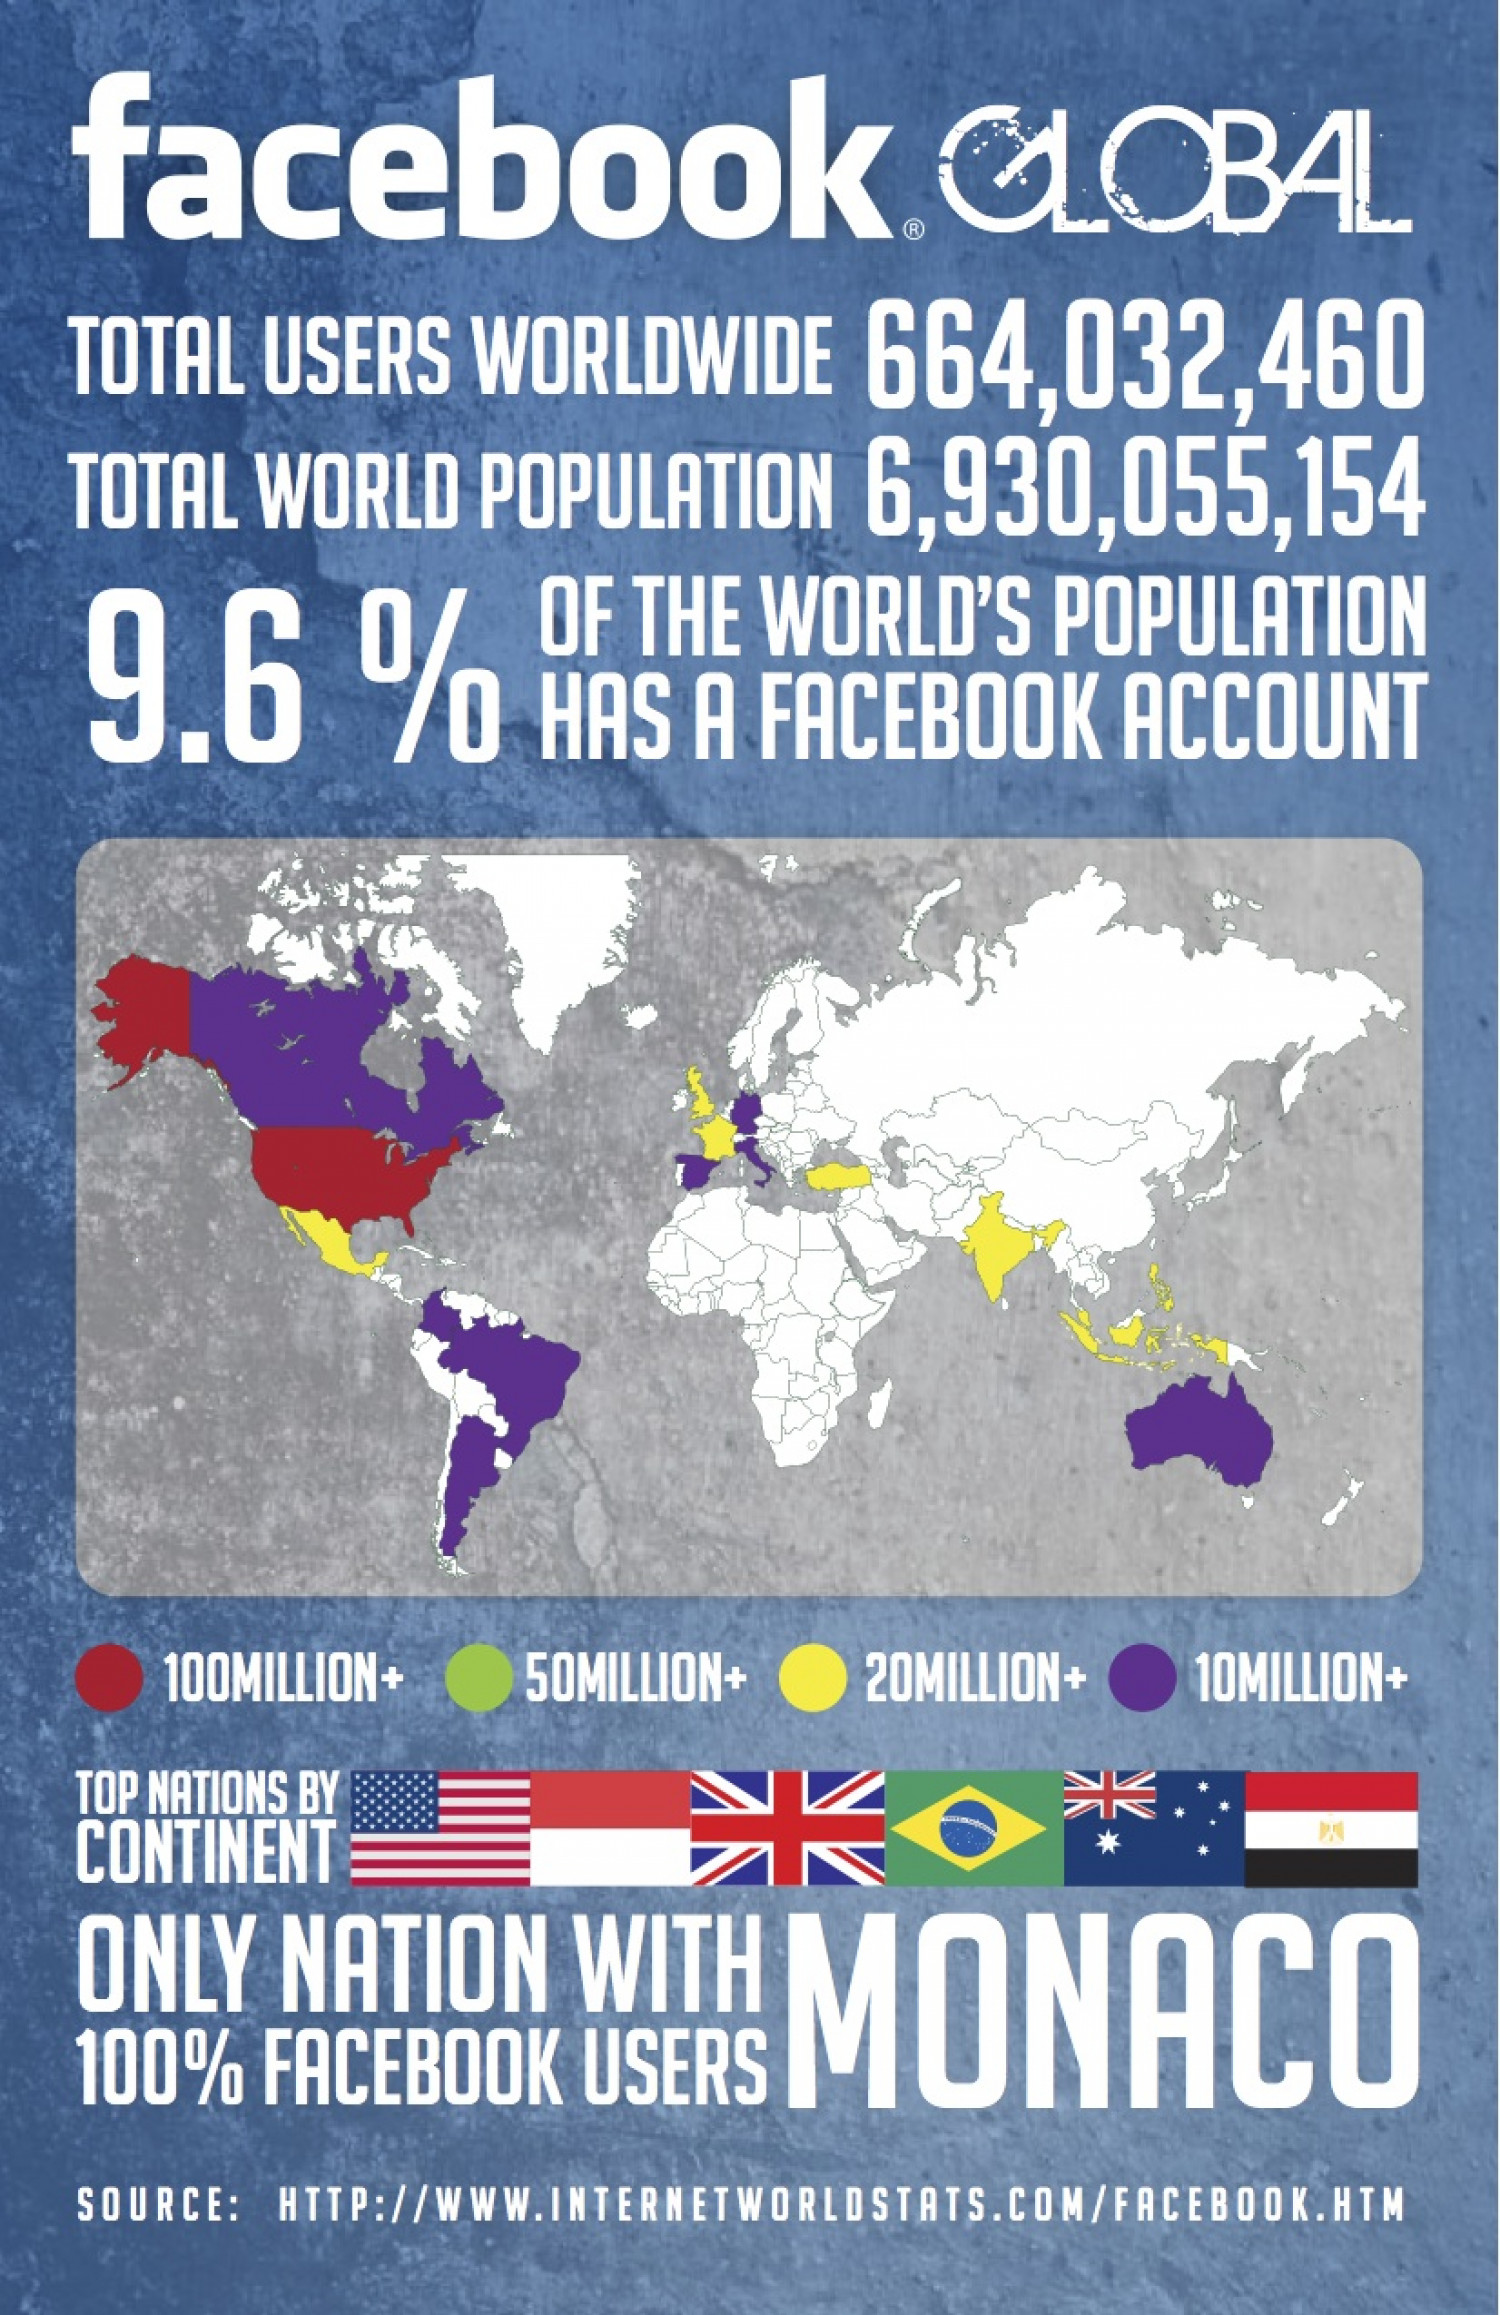 Facebook Global Infographic